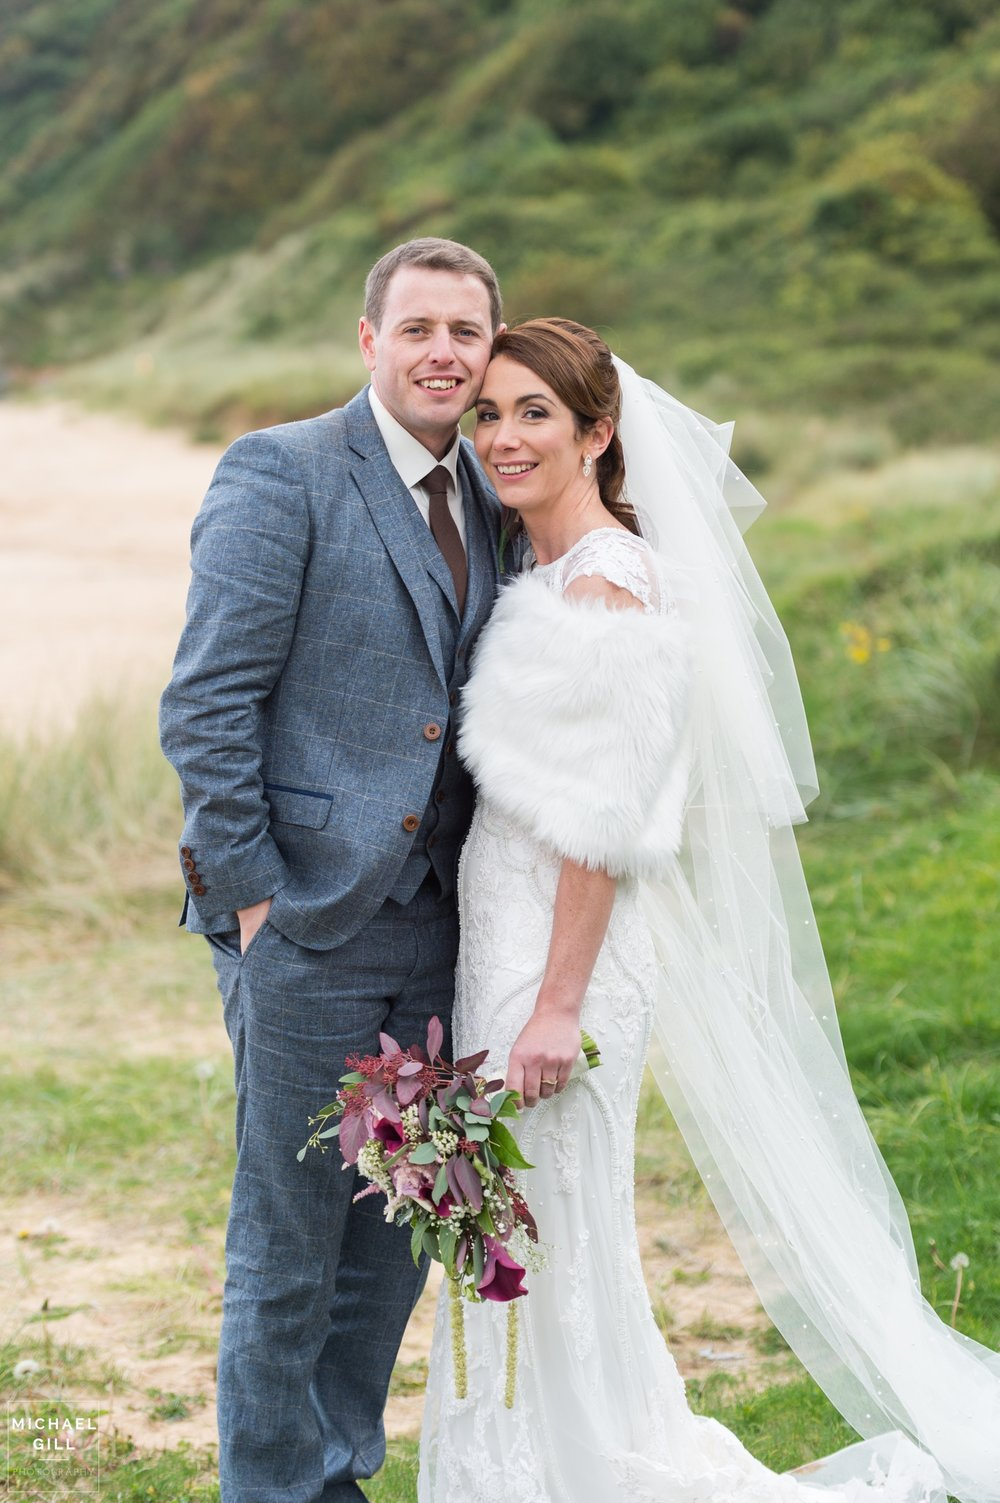 Michael_Gill_Photography_Kinnego_Redcastle_Hotel_Wedding9 (1).jpg